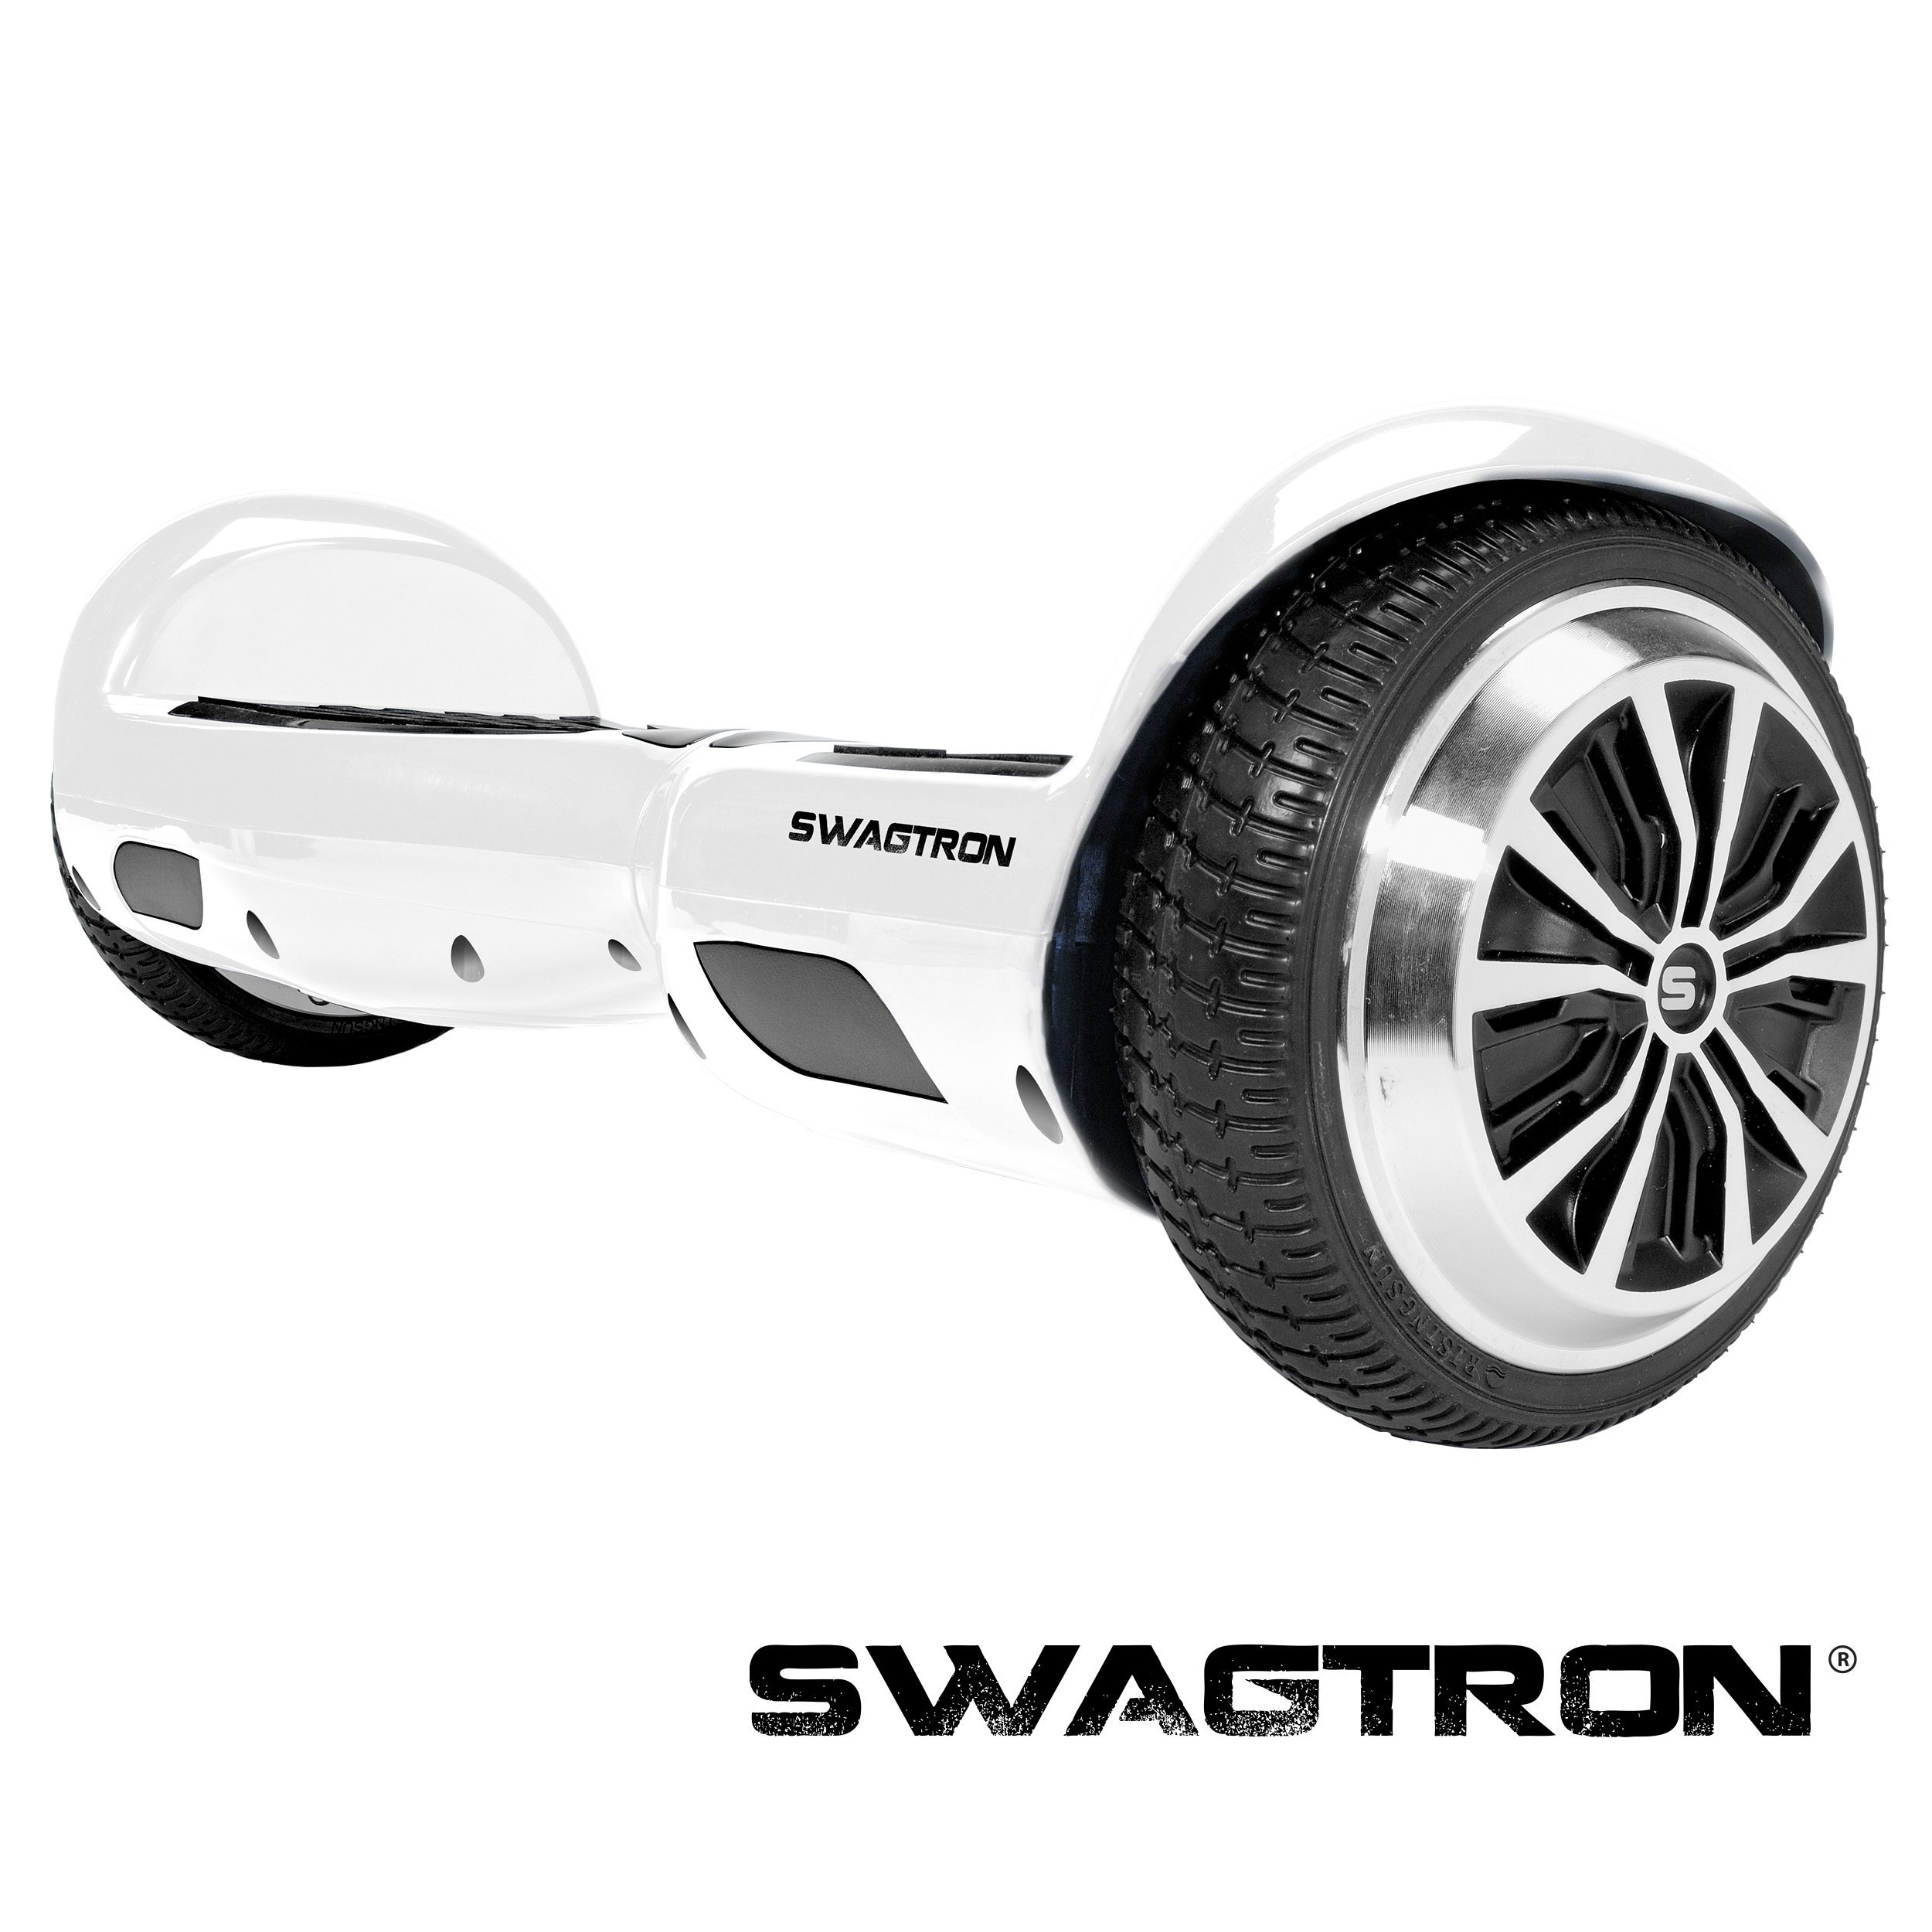 SWAGTRON T1 - UL 2272 Certified Hoverboard - Electric Self-Balancing Scooter – Your swag personal transporter awaits you. (White)